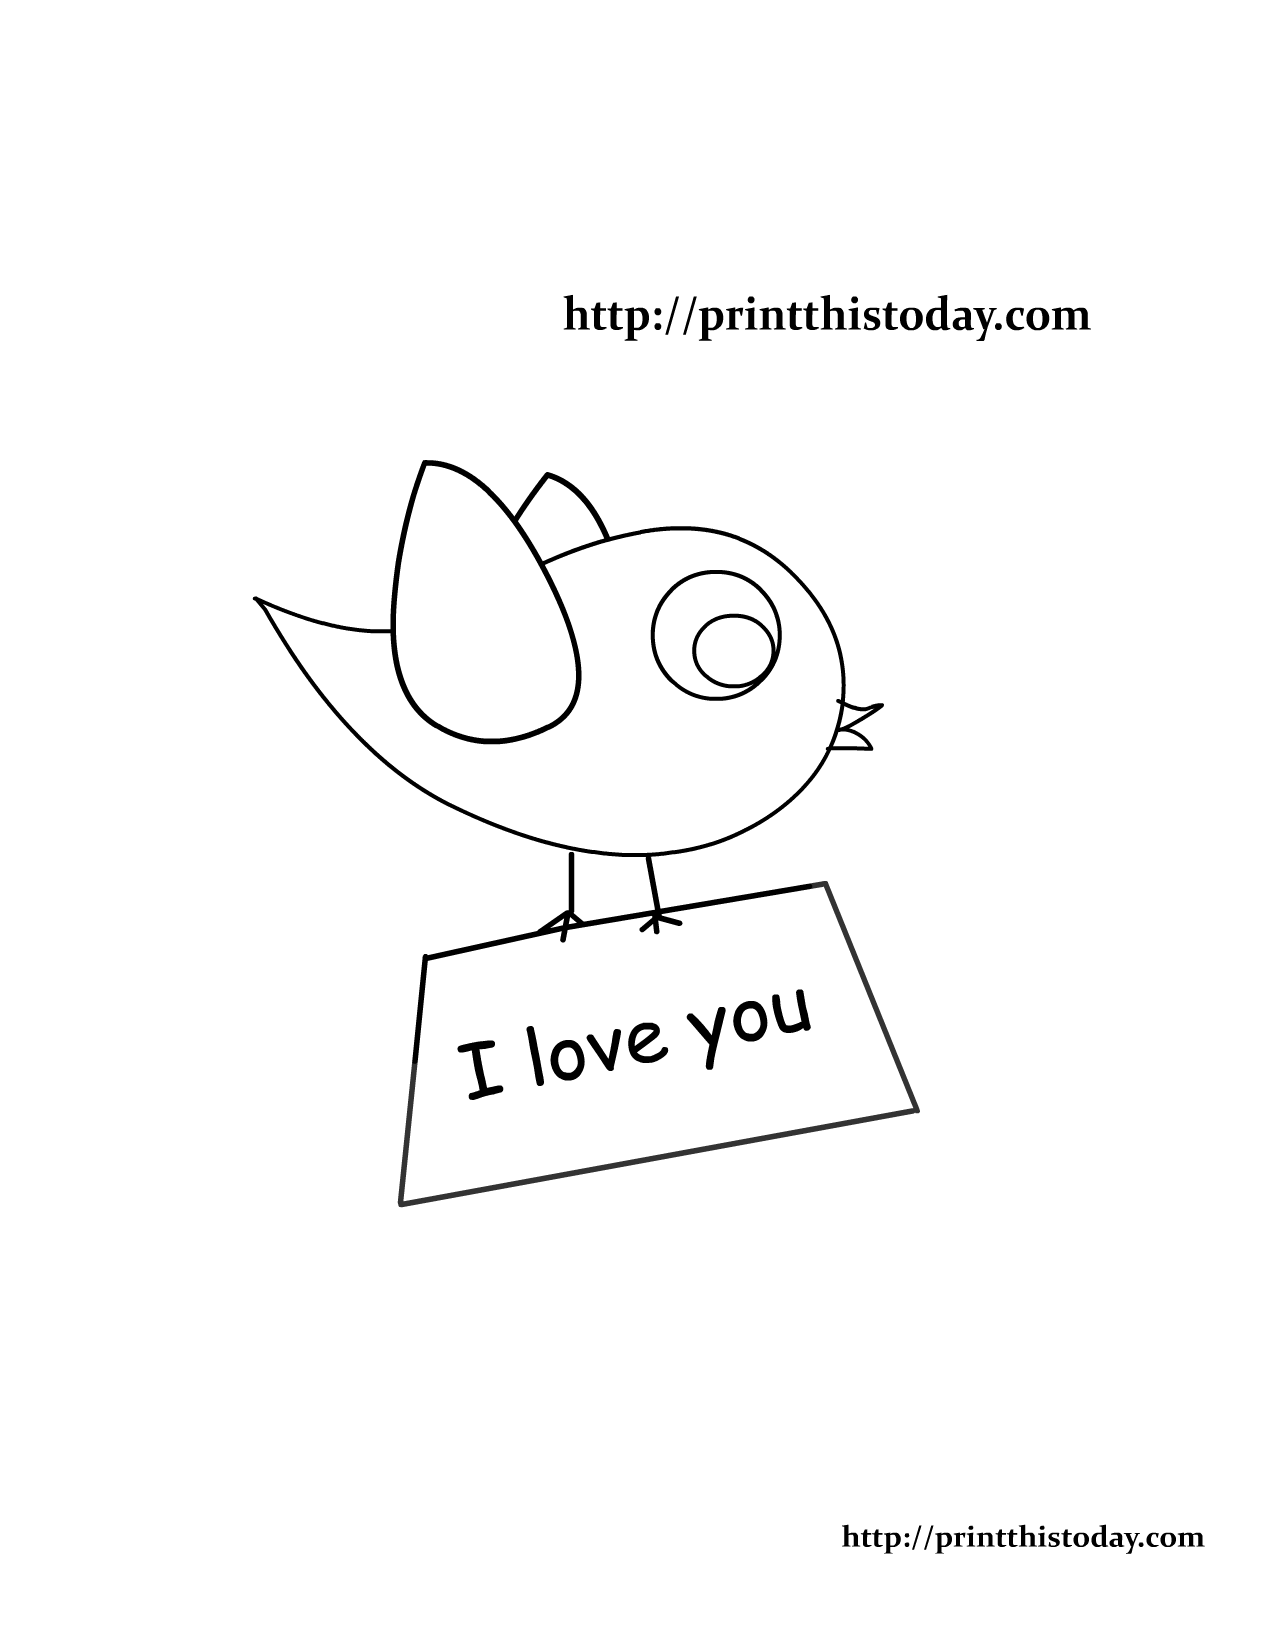 Printable coloring pages love - Love Bird Coloring Page Printable